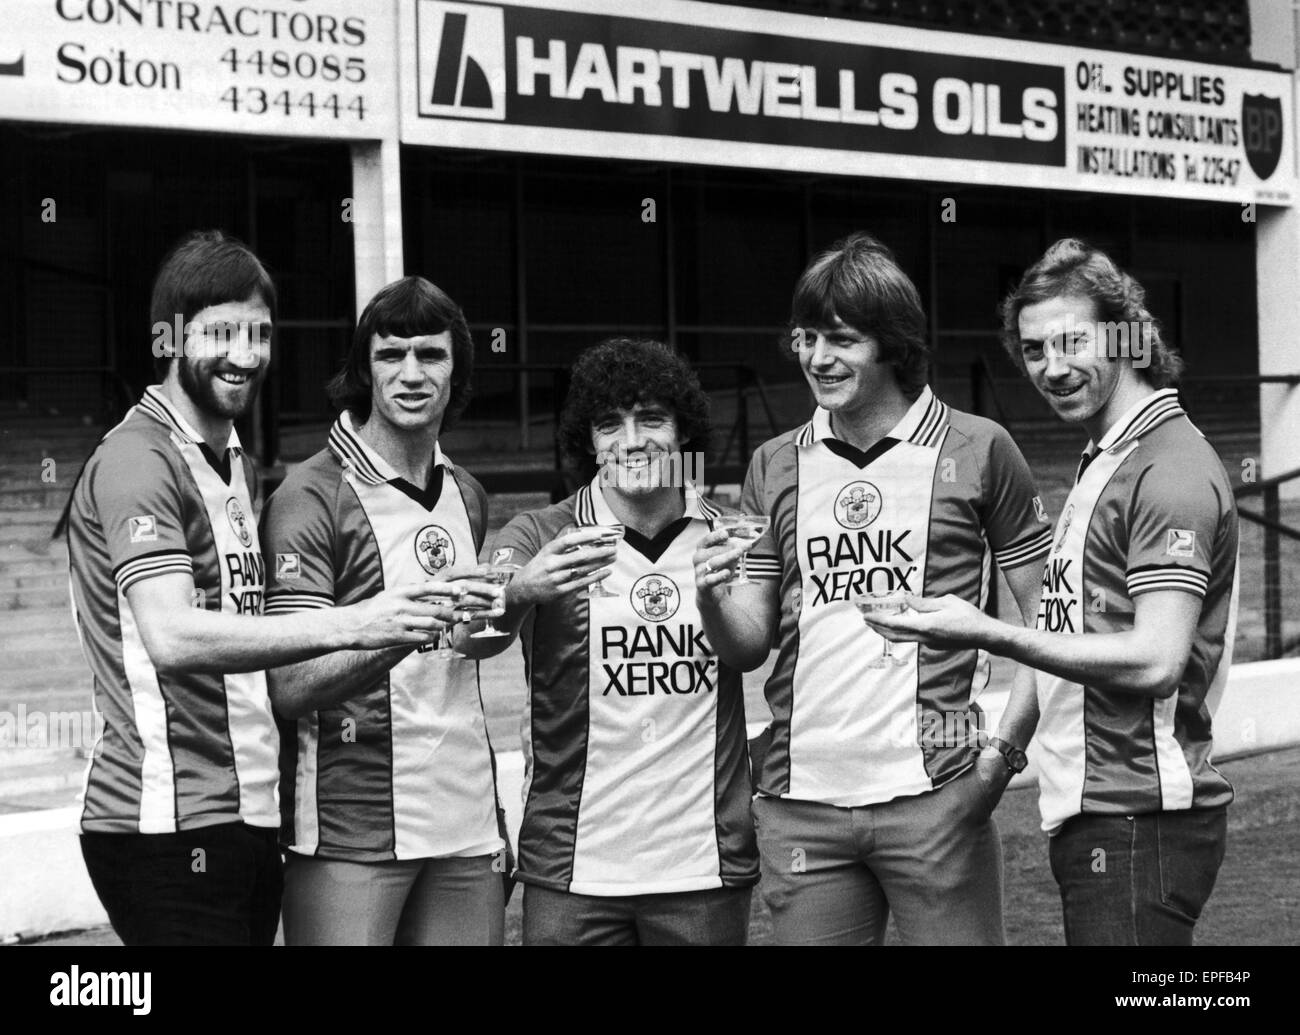 Southampton Fc Photocall To Announce New Sponsorship With Rank Xerox, 22nd  December 1980 From Left, Chris Nicholl, Dave Watson, Kevin Keegan, Mick  Channon